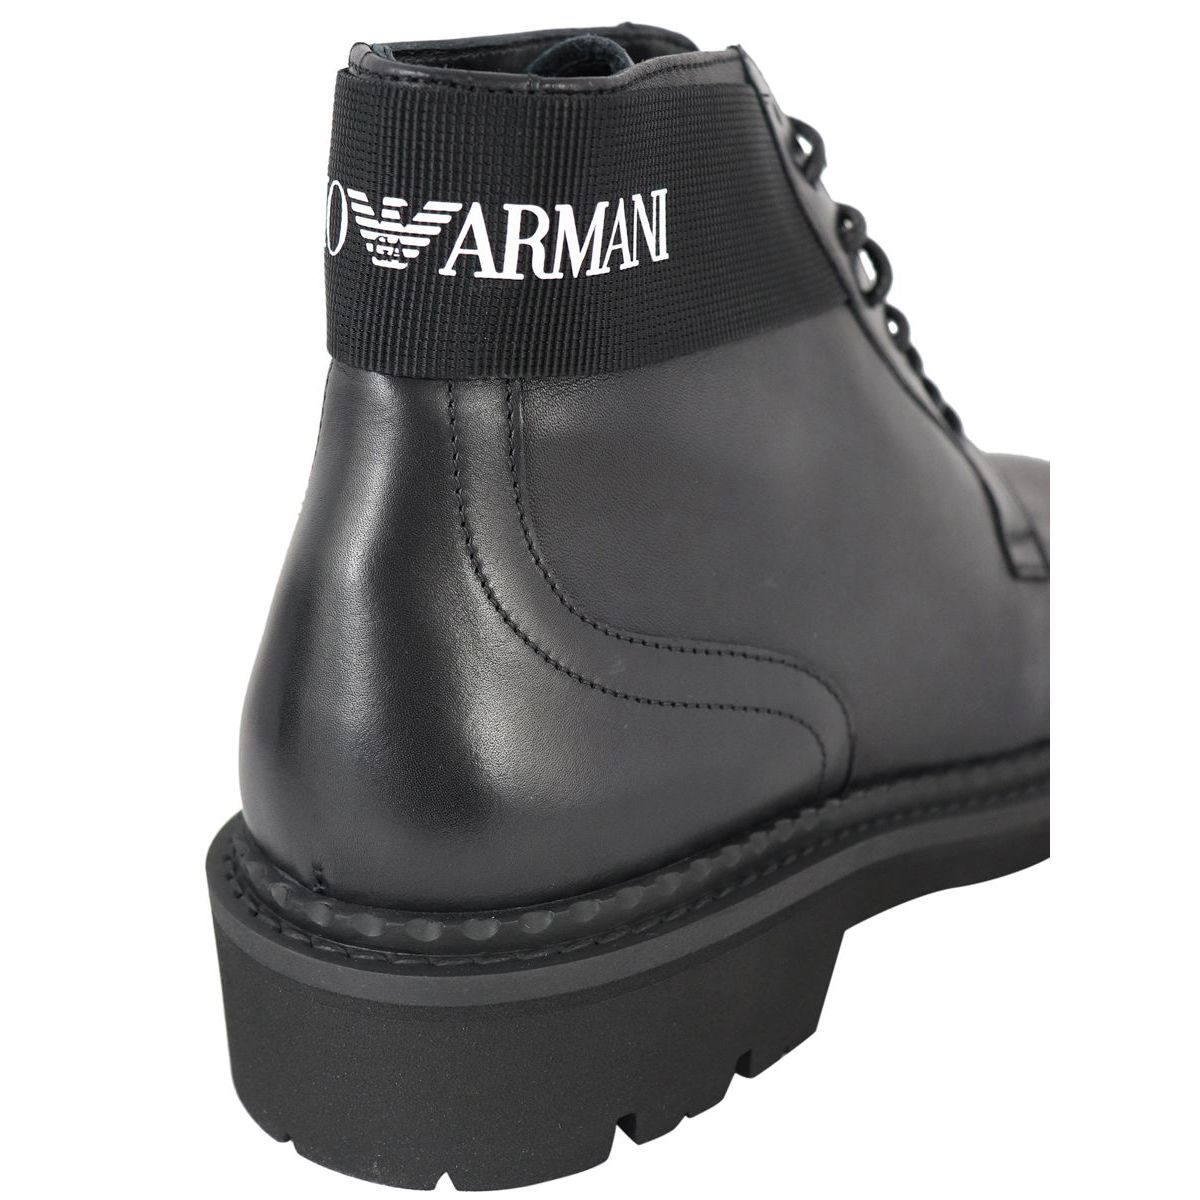 Leather boot with logo on the back Black Emporio Armani